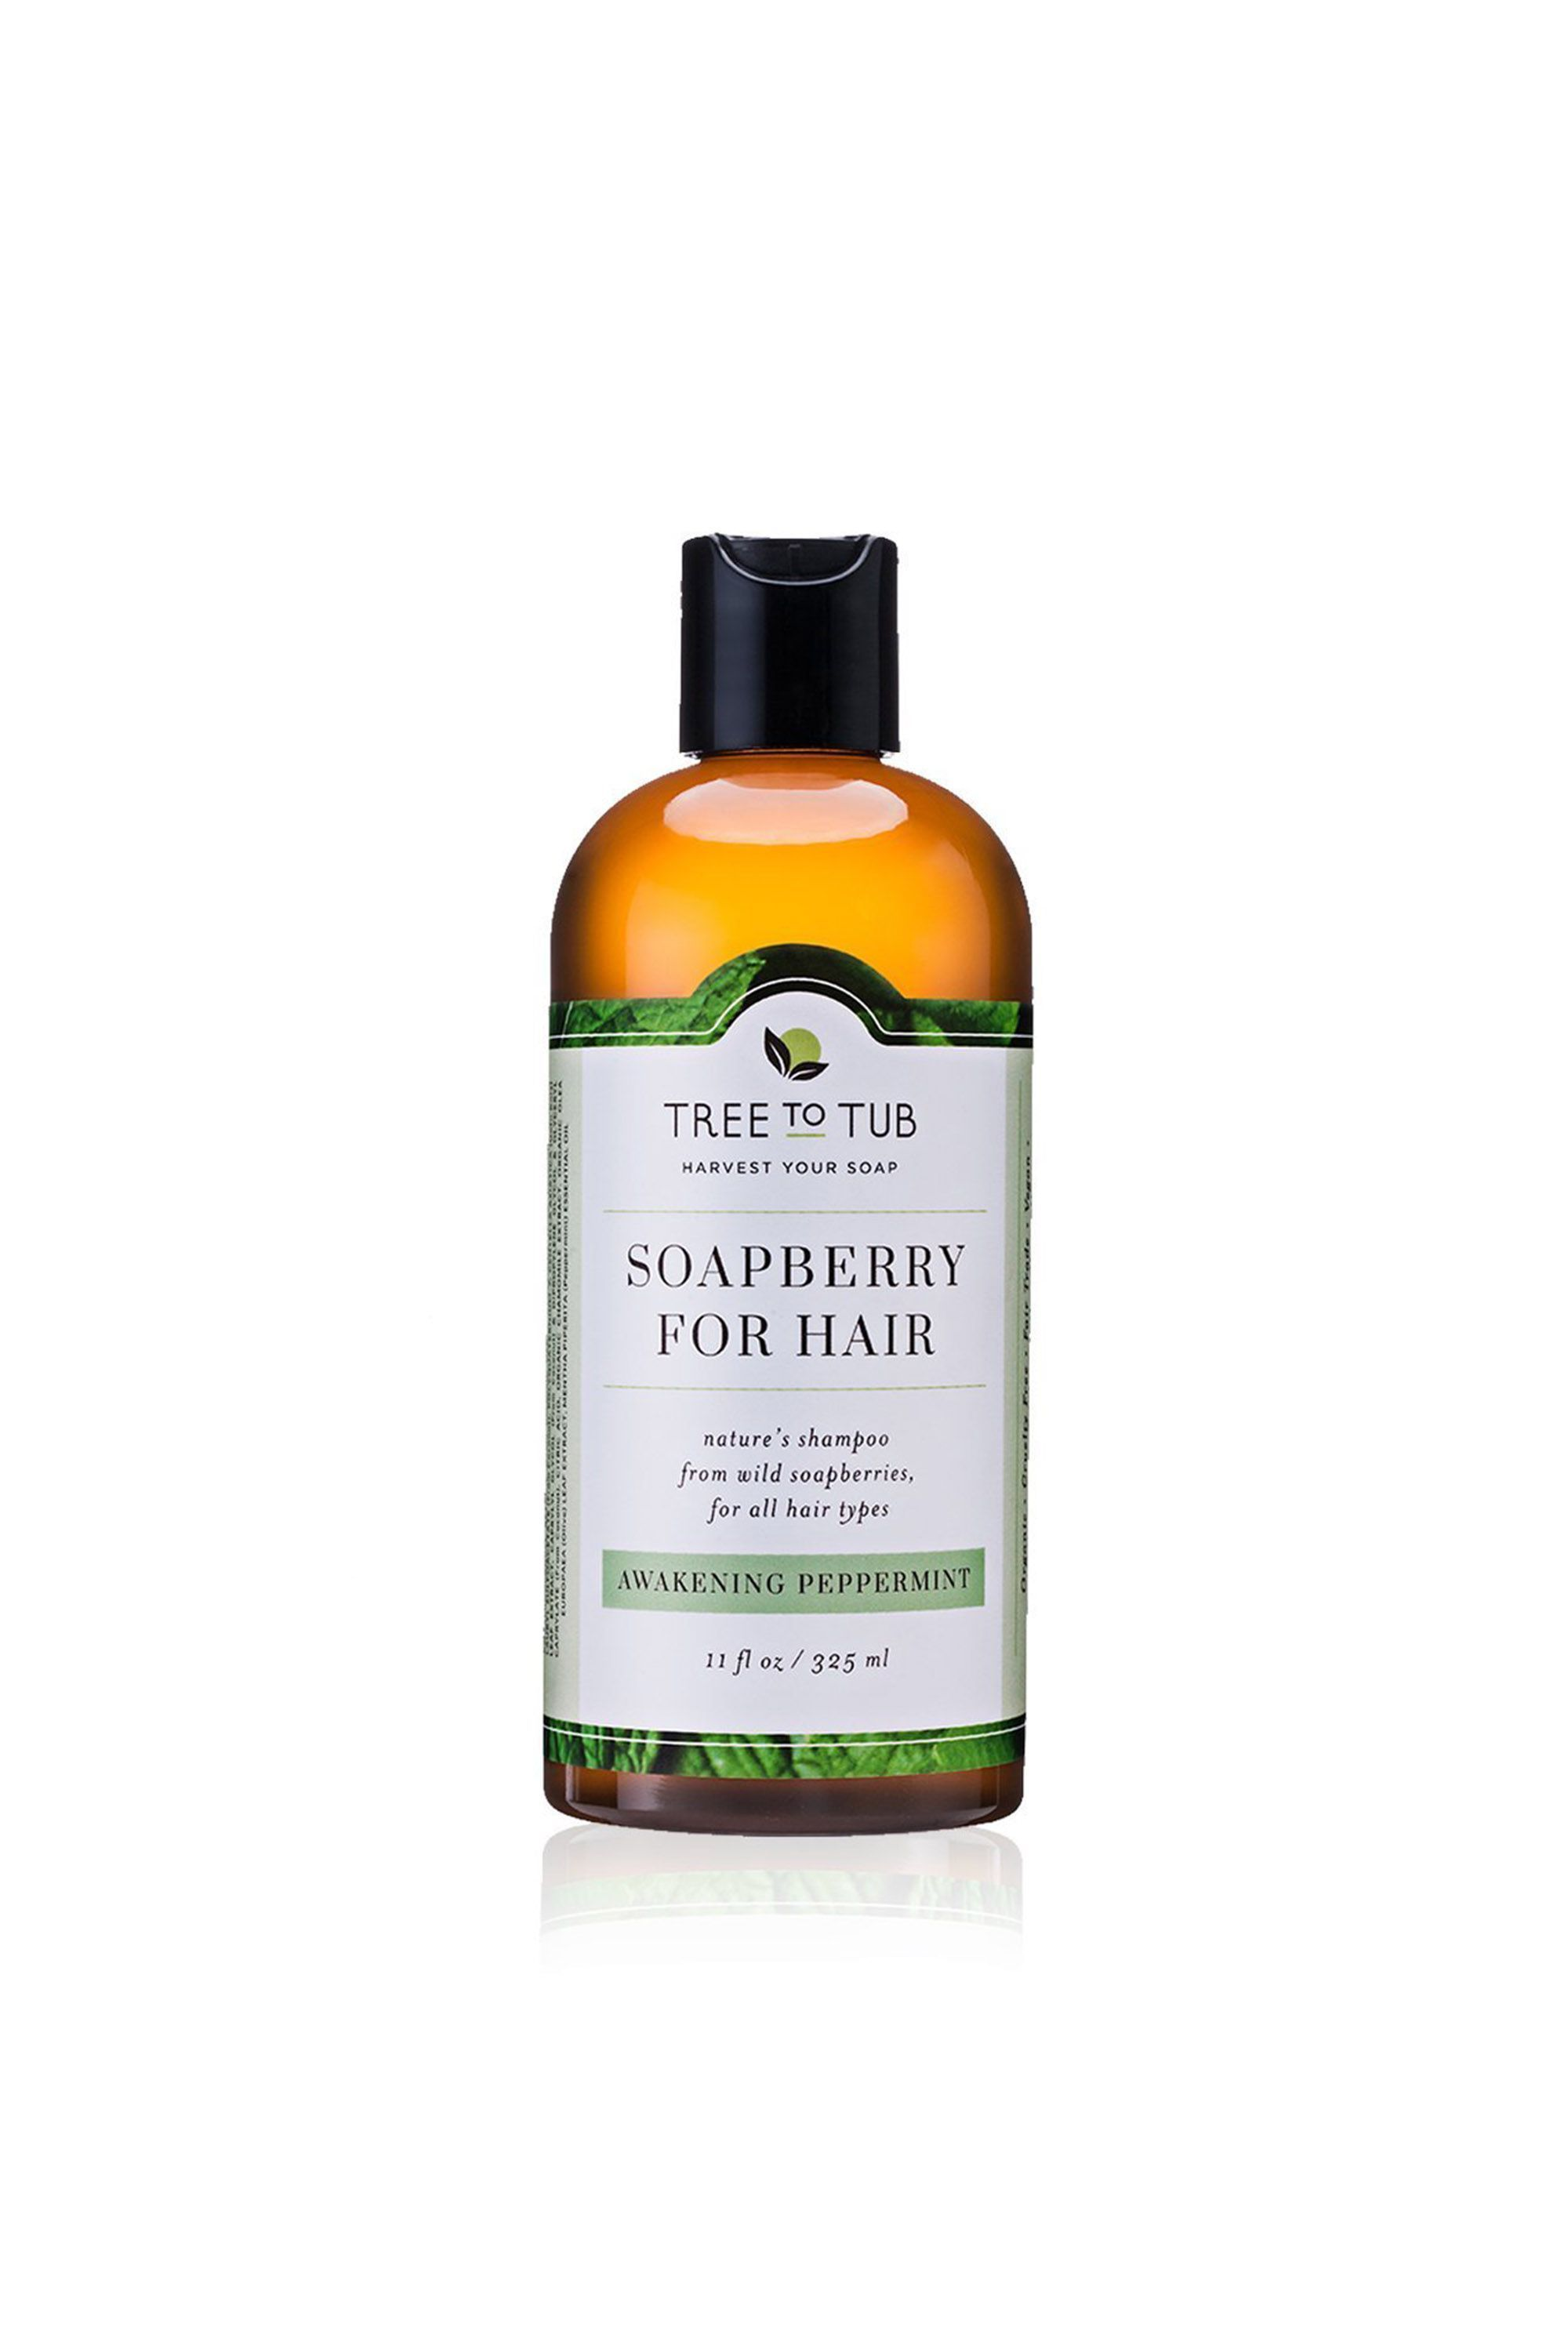 For A Sensitive Scalp Organic Argan Shampoo Tree to Tub amazon.com $18.94 SHOP NOW Tree to Tub's Soapberry Shampoo puts your scalp first. Perfect for dry, irritated, or sensitive scalps, the formula is naturally cleansing and free from any toxins that might irritate your skin.